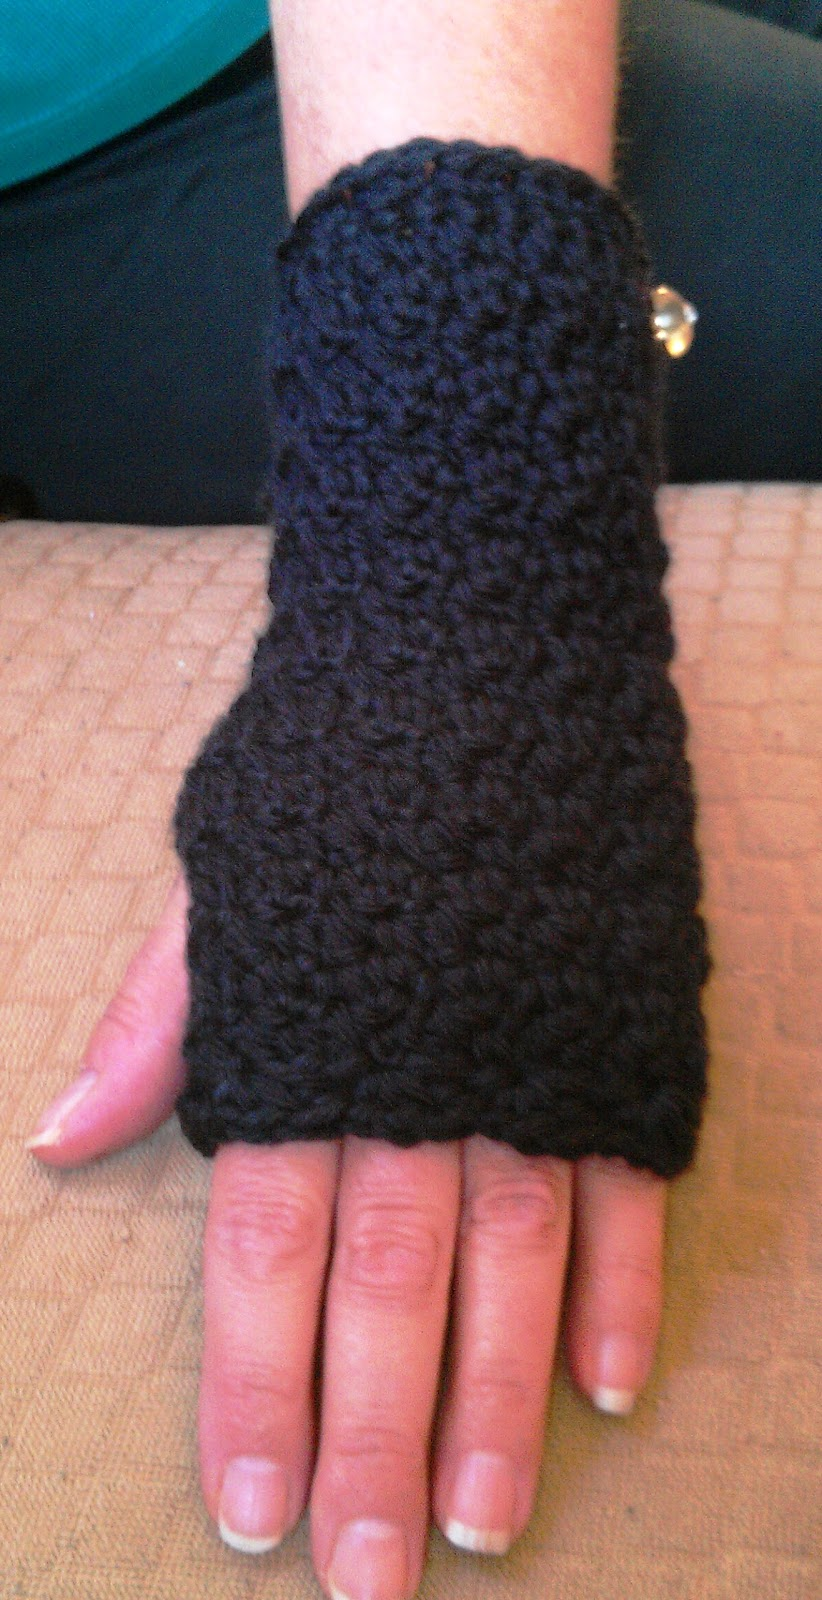 Free Crochet Patterns Hand Warmers : Cute Crochet Chat: New Crochet Hand/Wrist Warmers Pattern